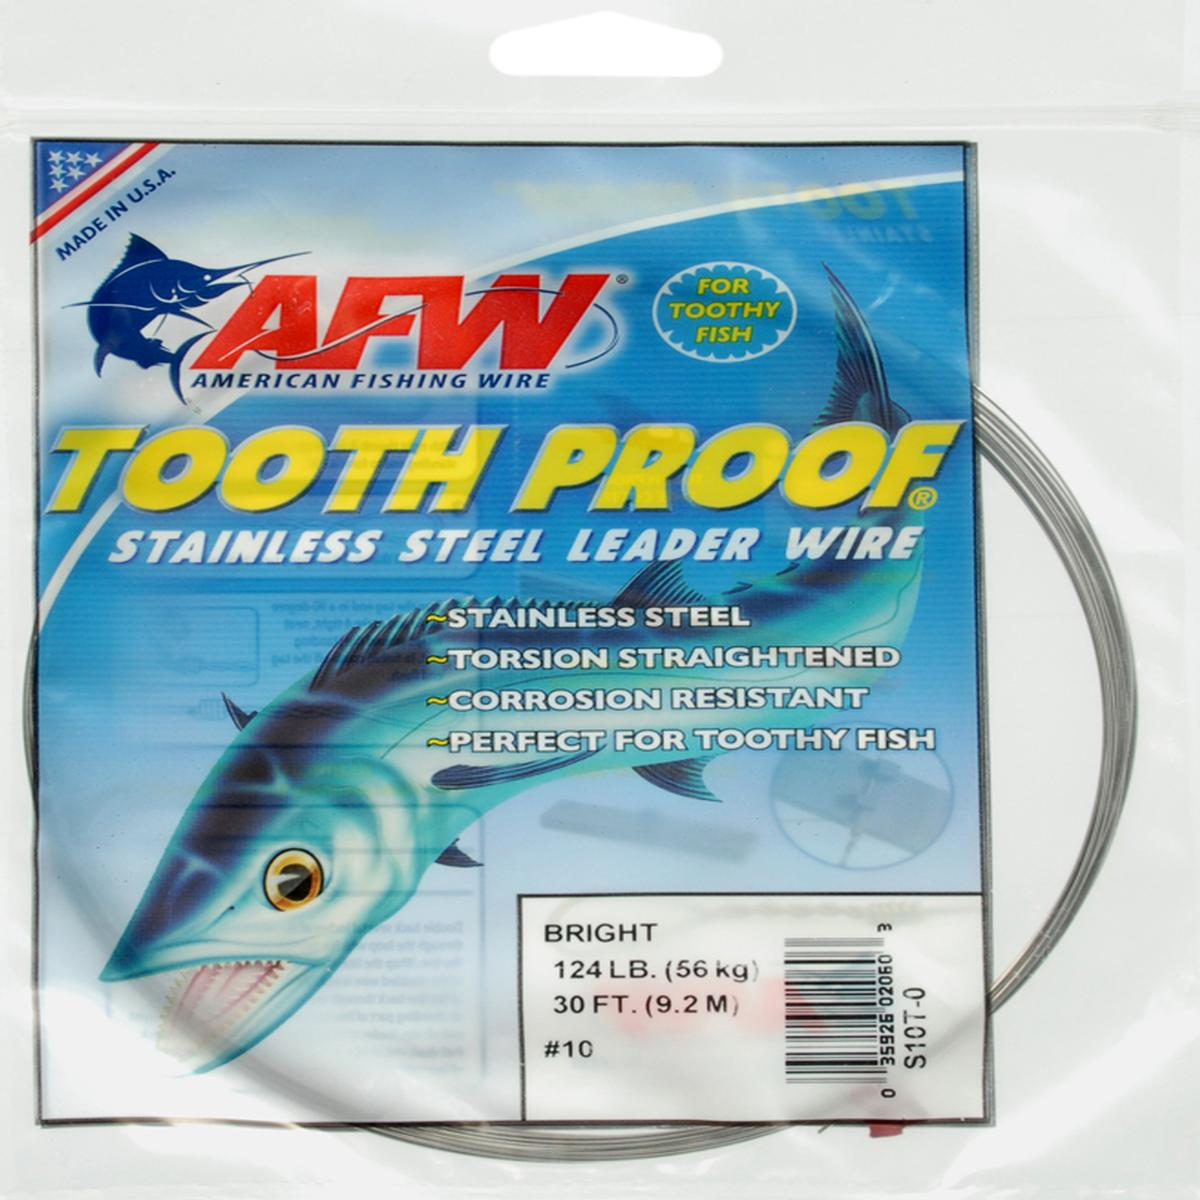 AFW Tooth Proof Stainless Steel Leader Single Strand Wire 124LB Test 30FT BRIGHT